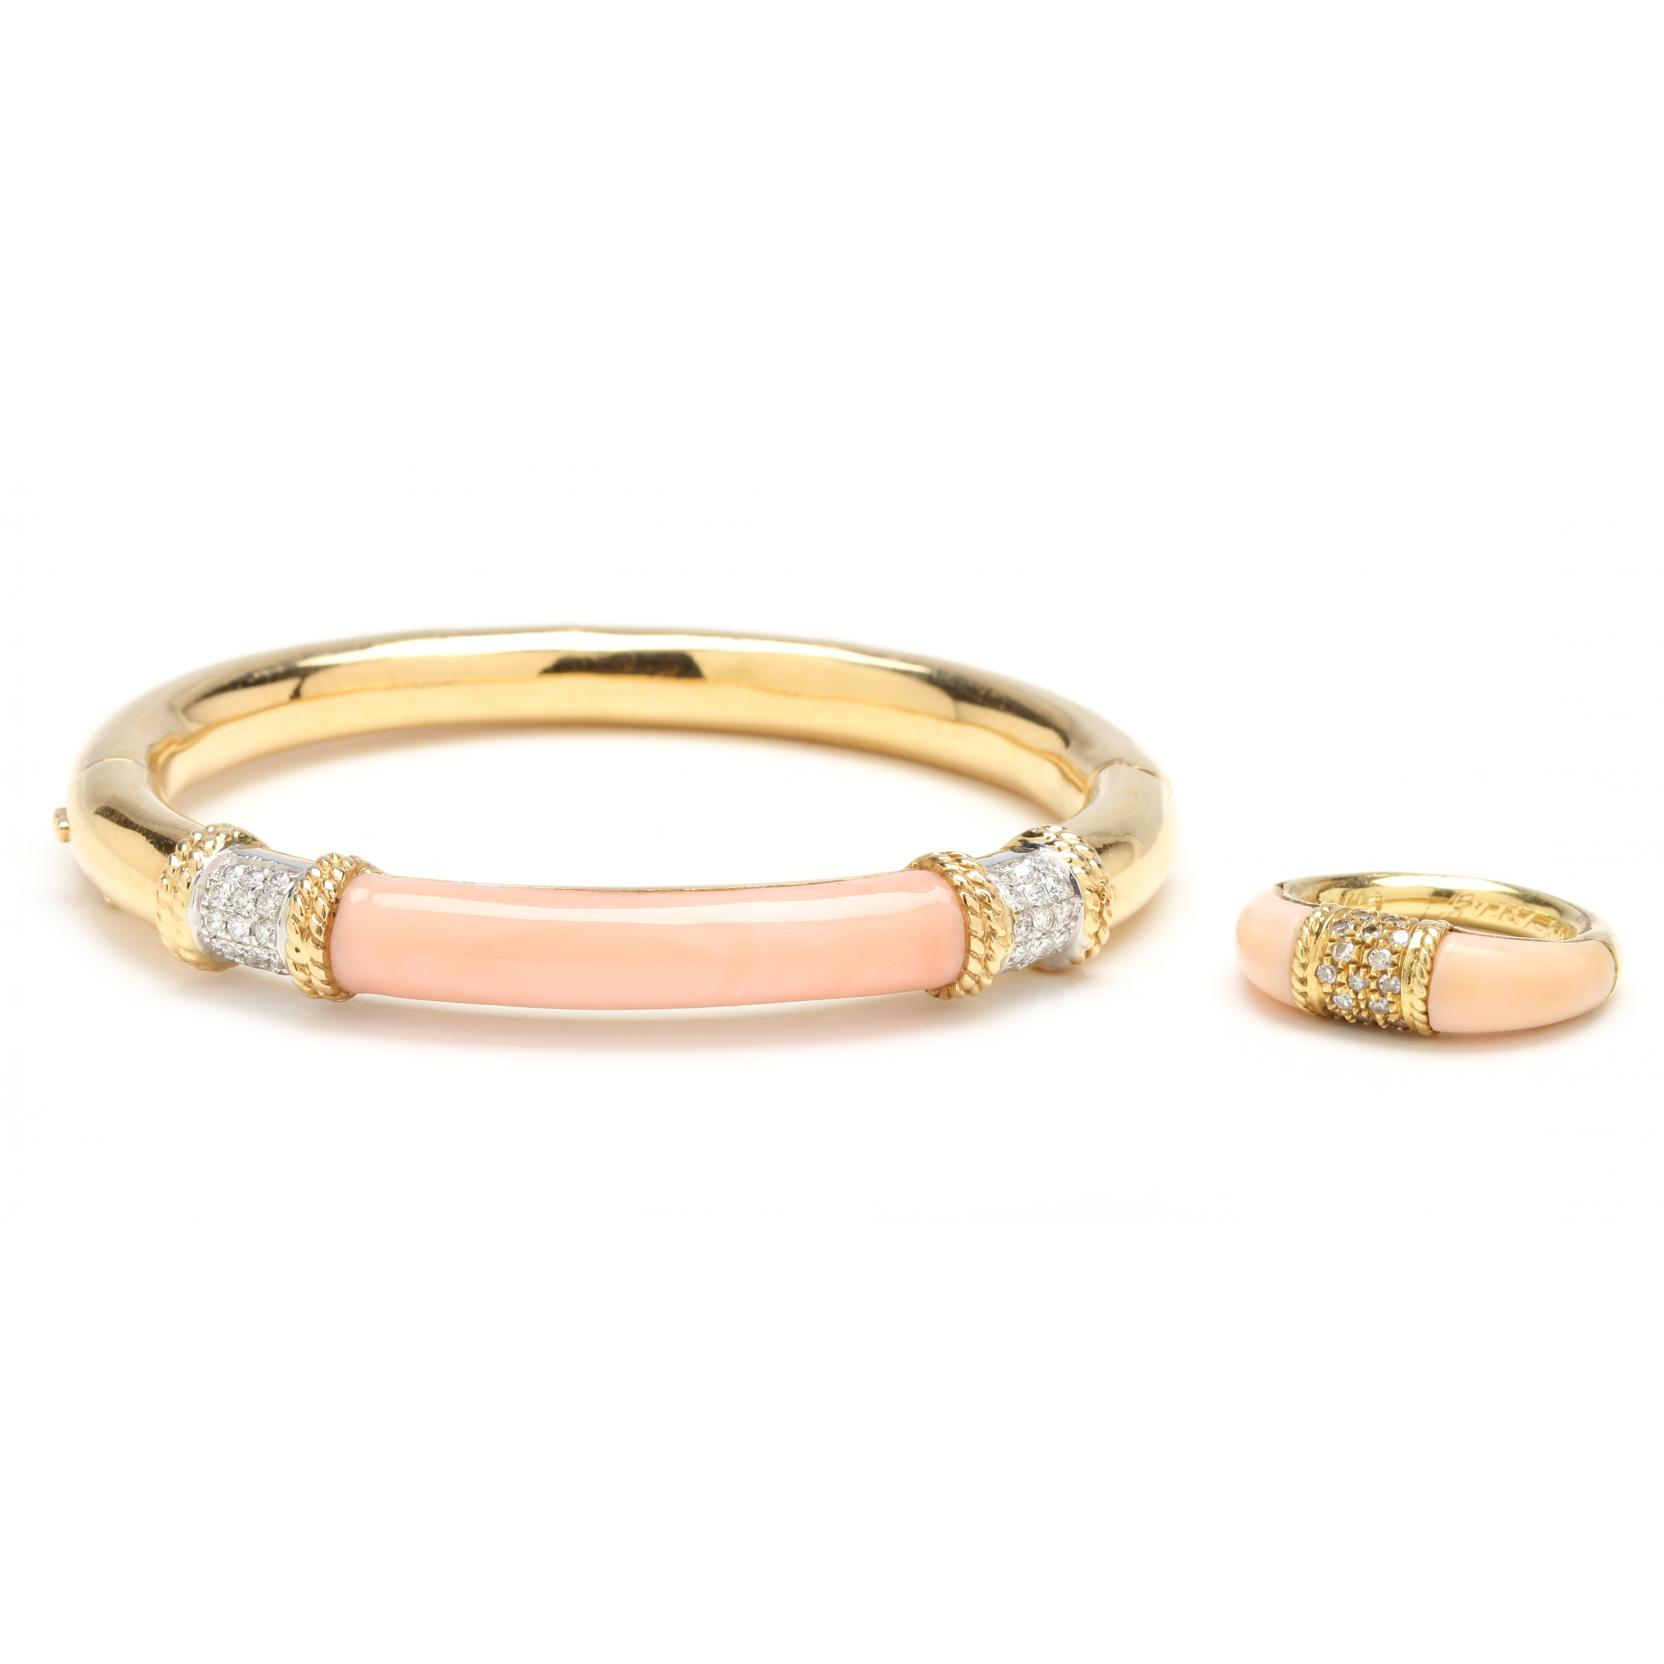 18kt-diamond-and-coral-bracelet-and-ring